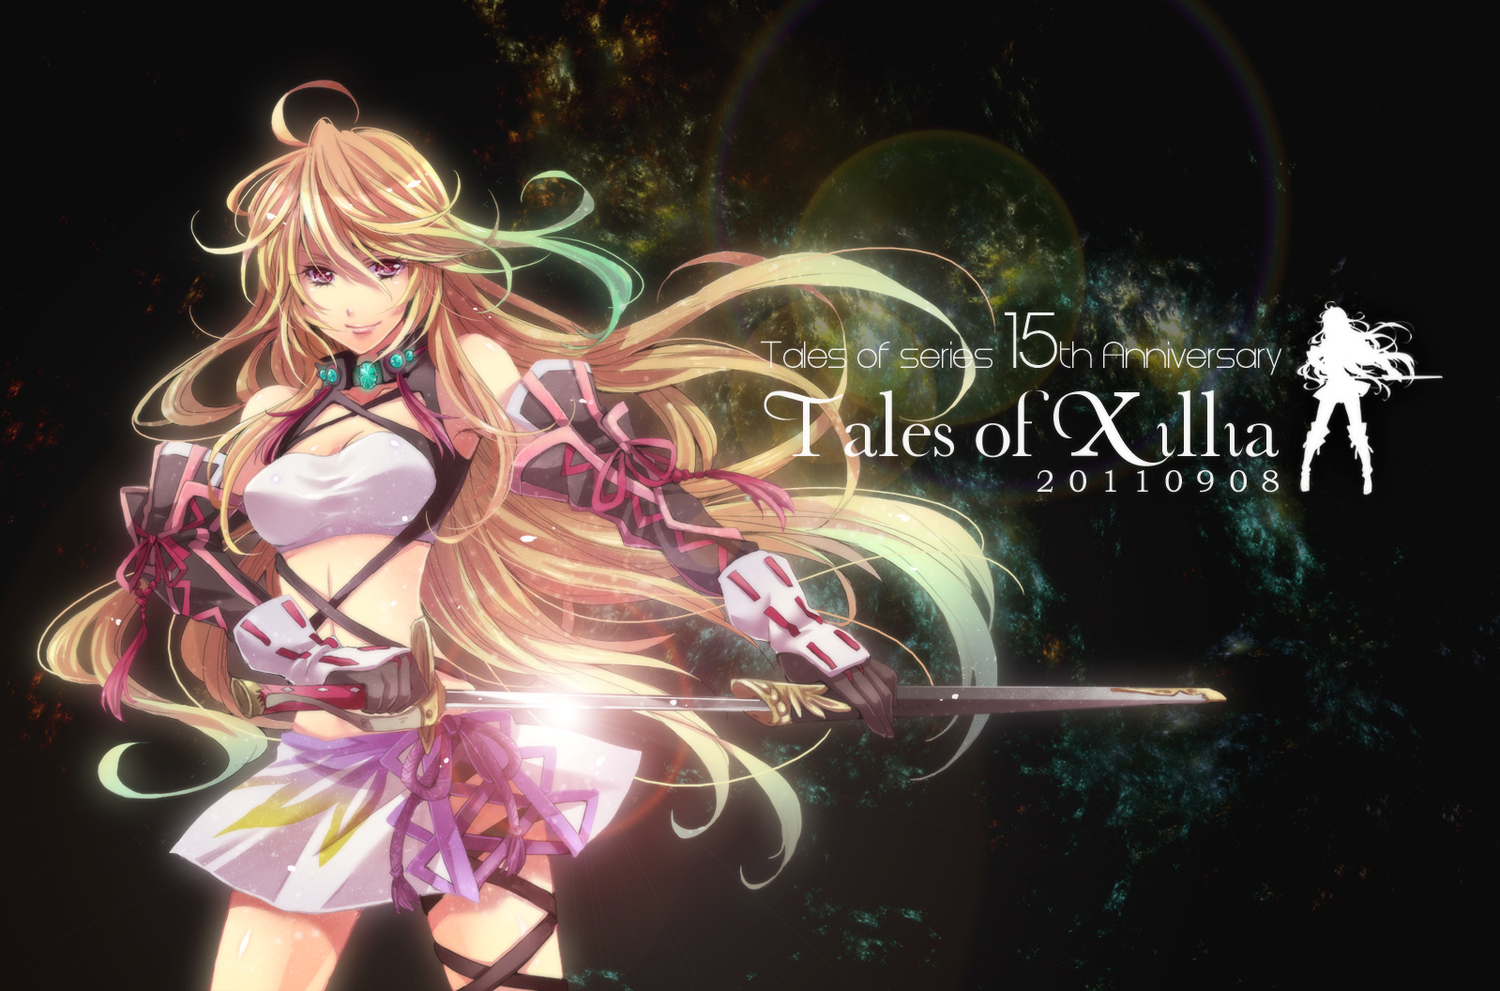 blonde_hair kanou_rihito milla_maxwell purple_eyes skirt sword tales_of_xillia weapon